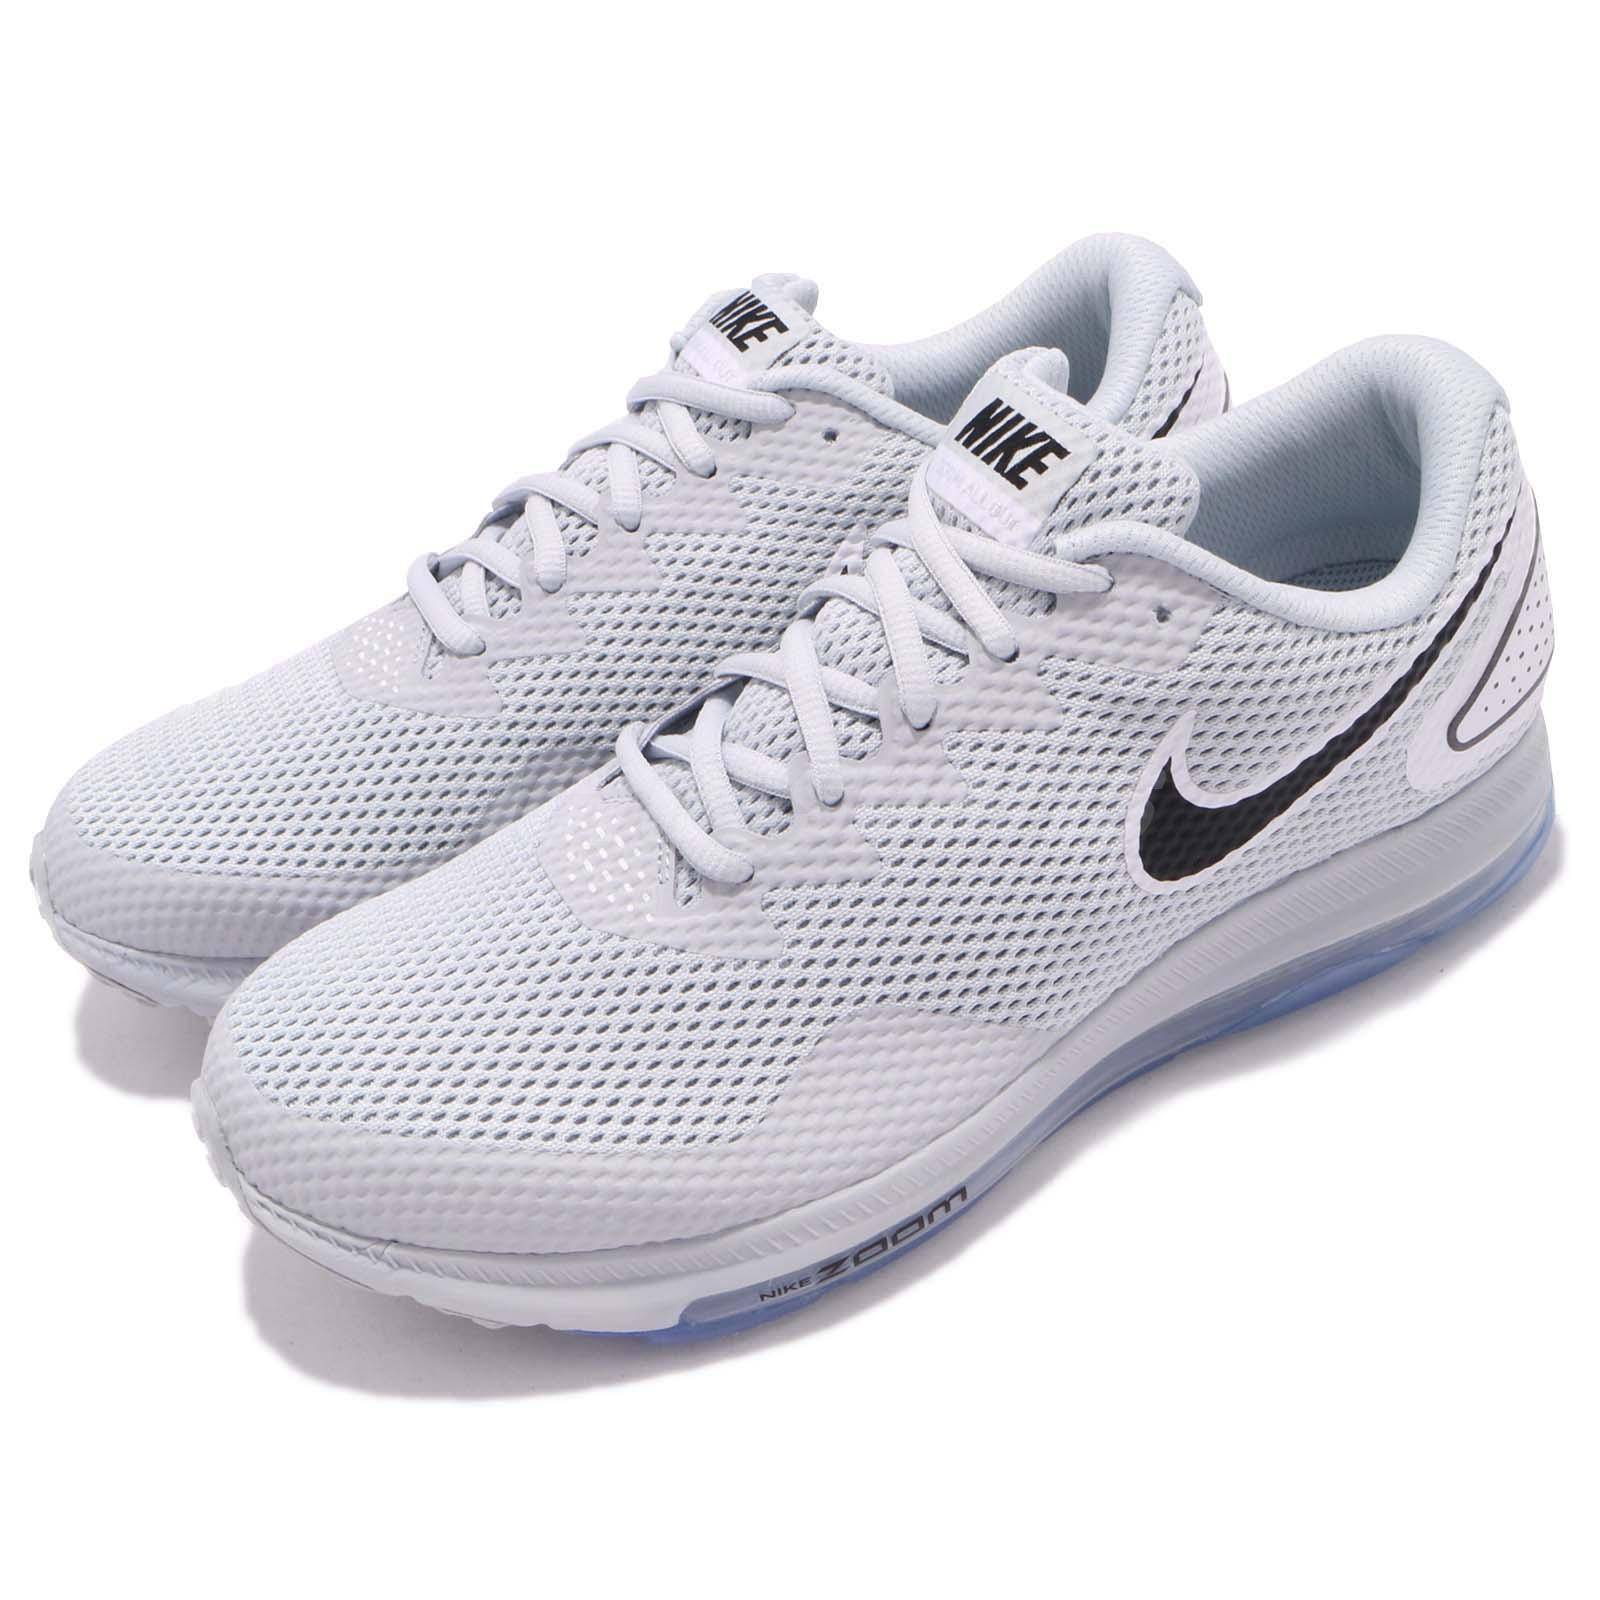 609b1501c7e7 Details about Nike Zoom All Out Low 2 II Pure Platinum Black White Men  Running Shoe AJ0035-010